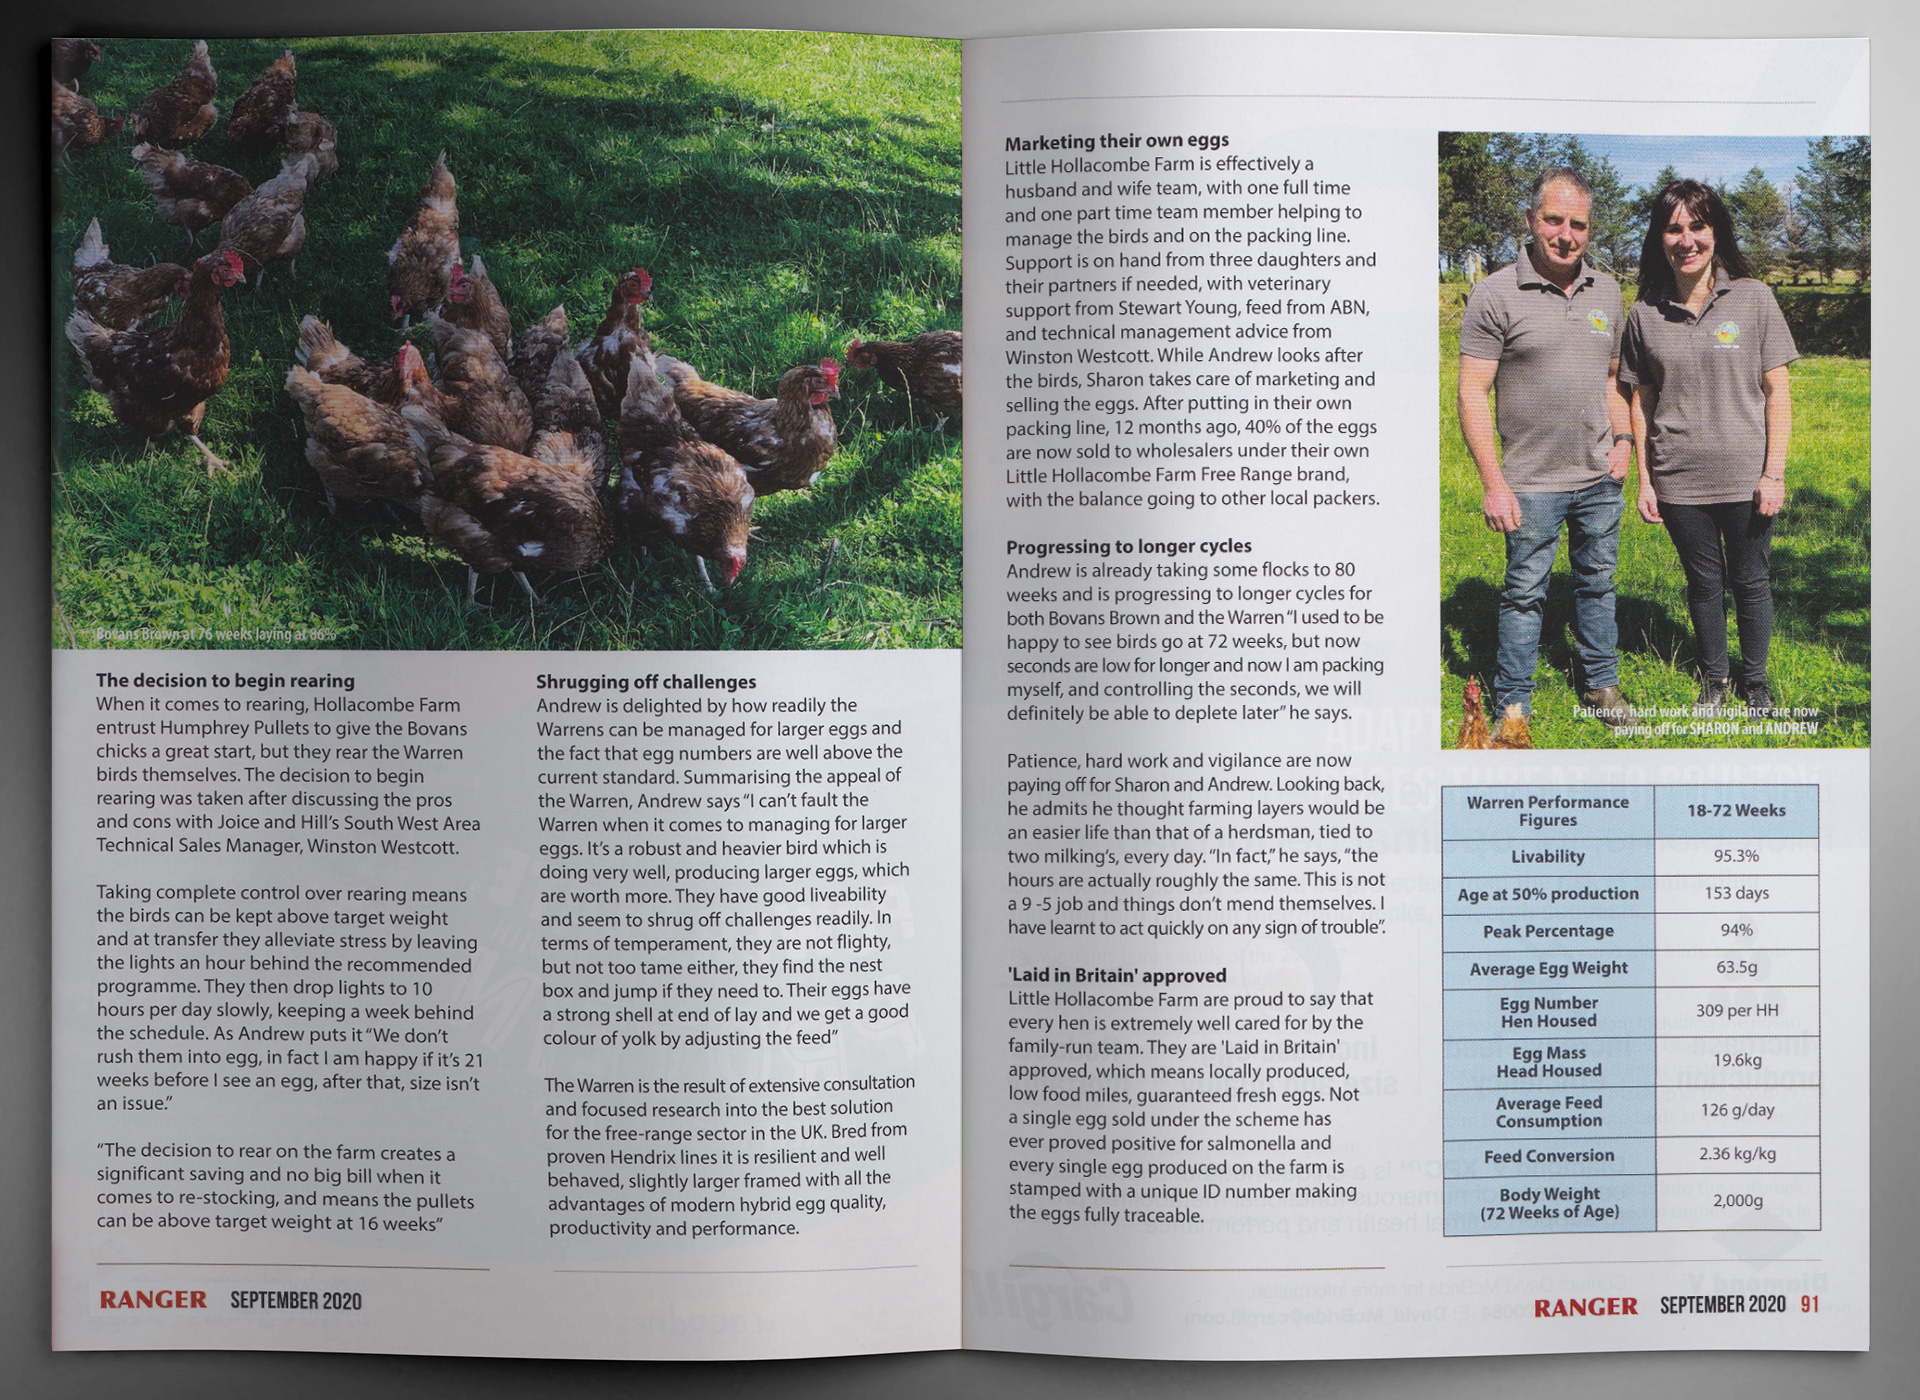 The Ranger - Poultry News